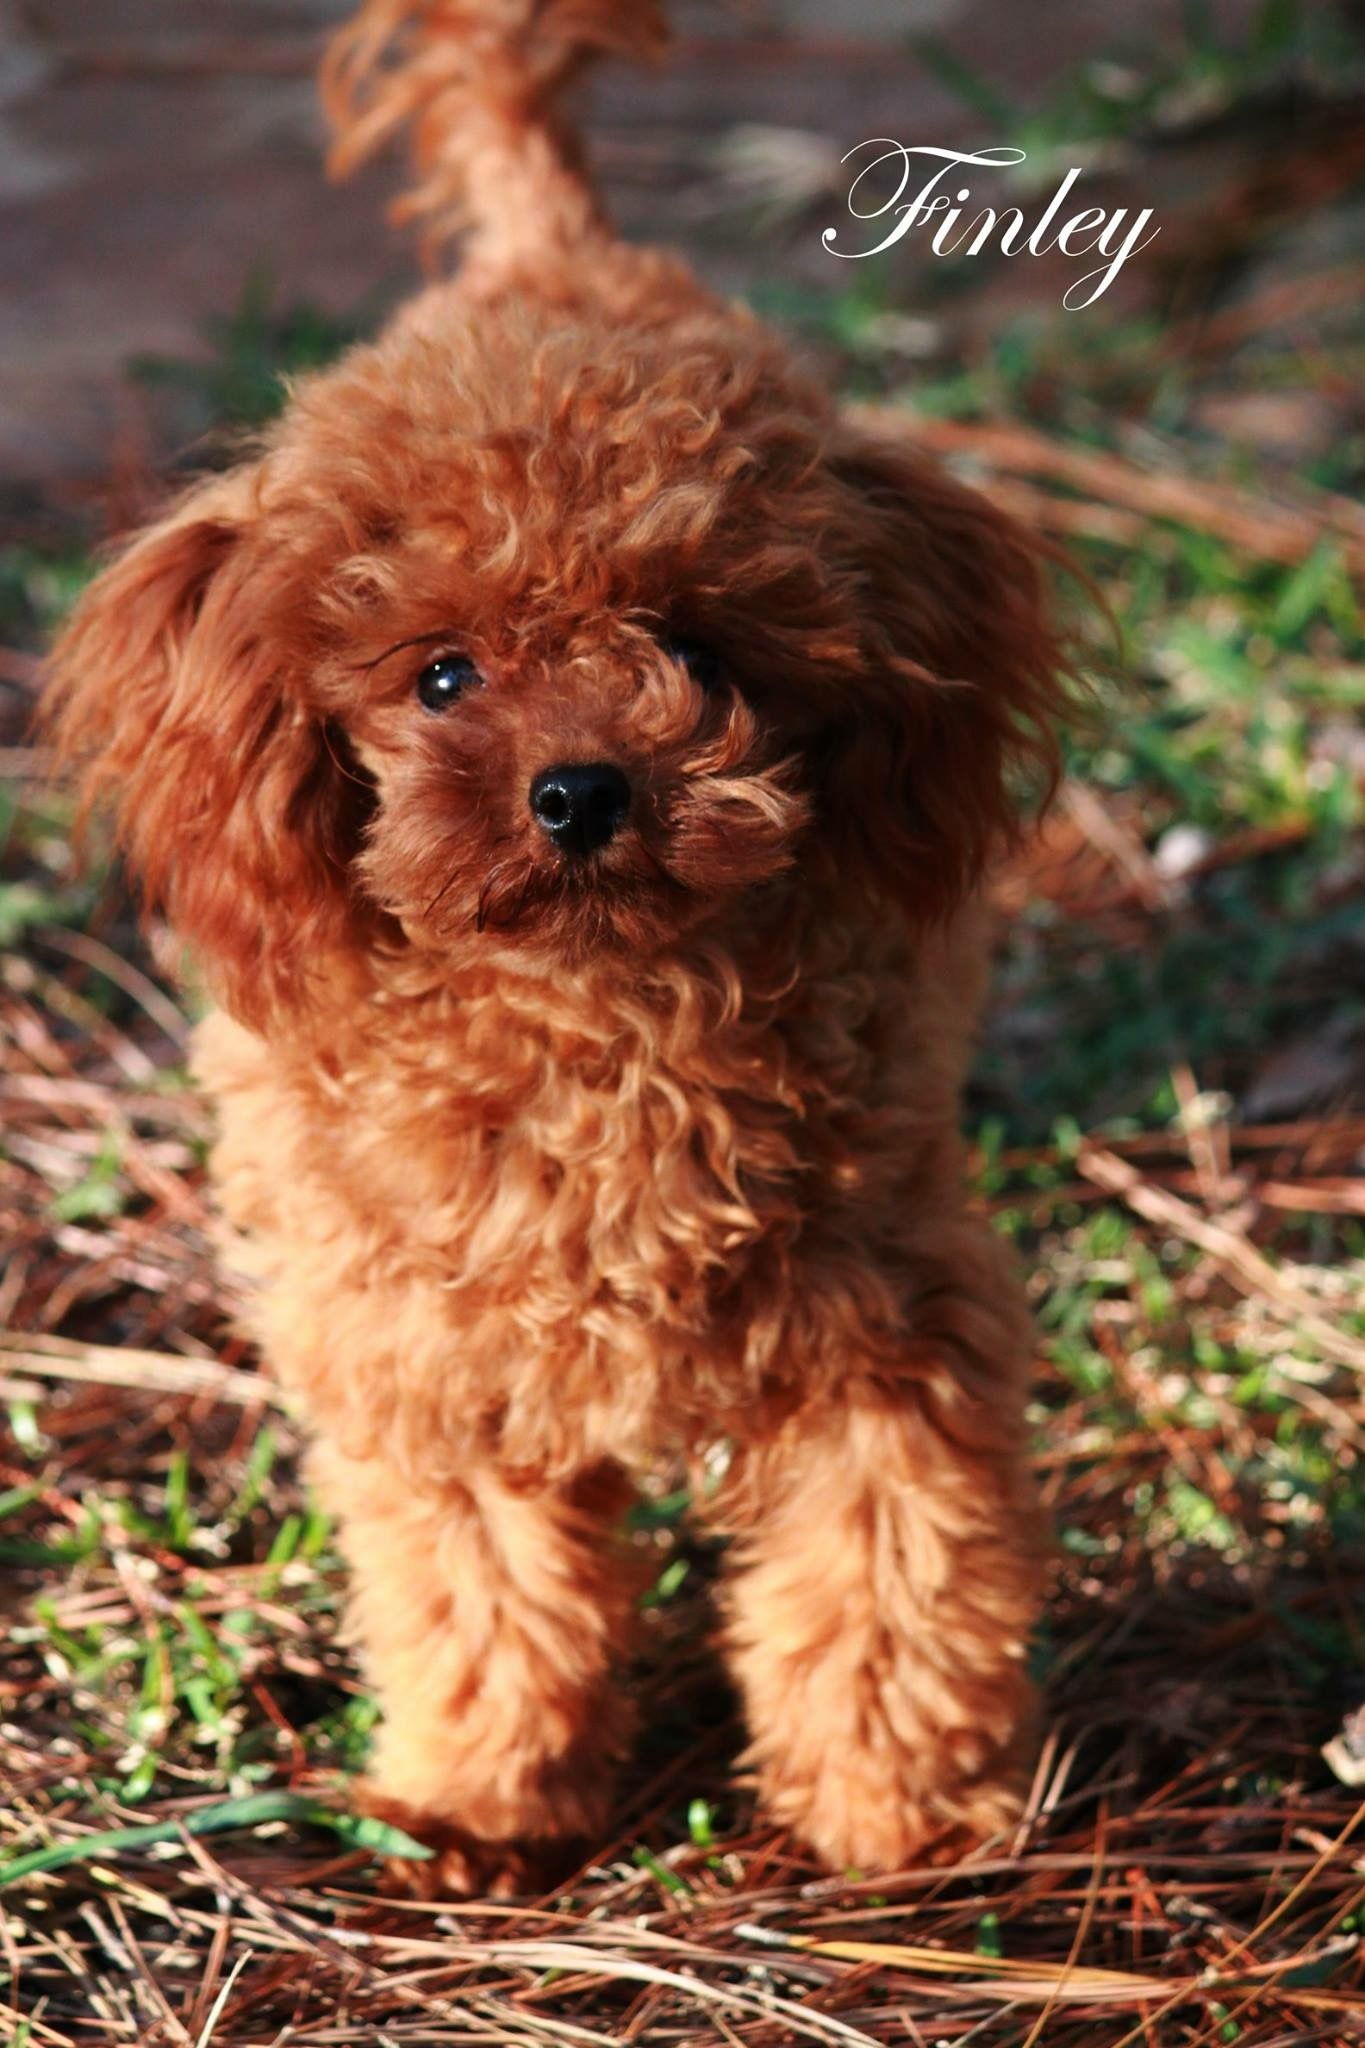 La Petite Poodles Of Texas Mr Finley Cute Cats And Dogs